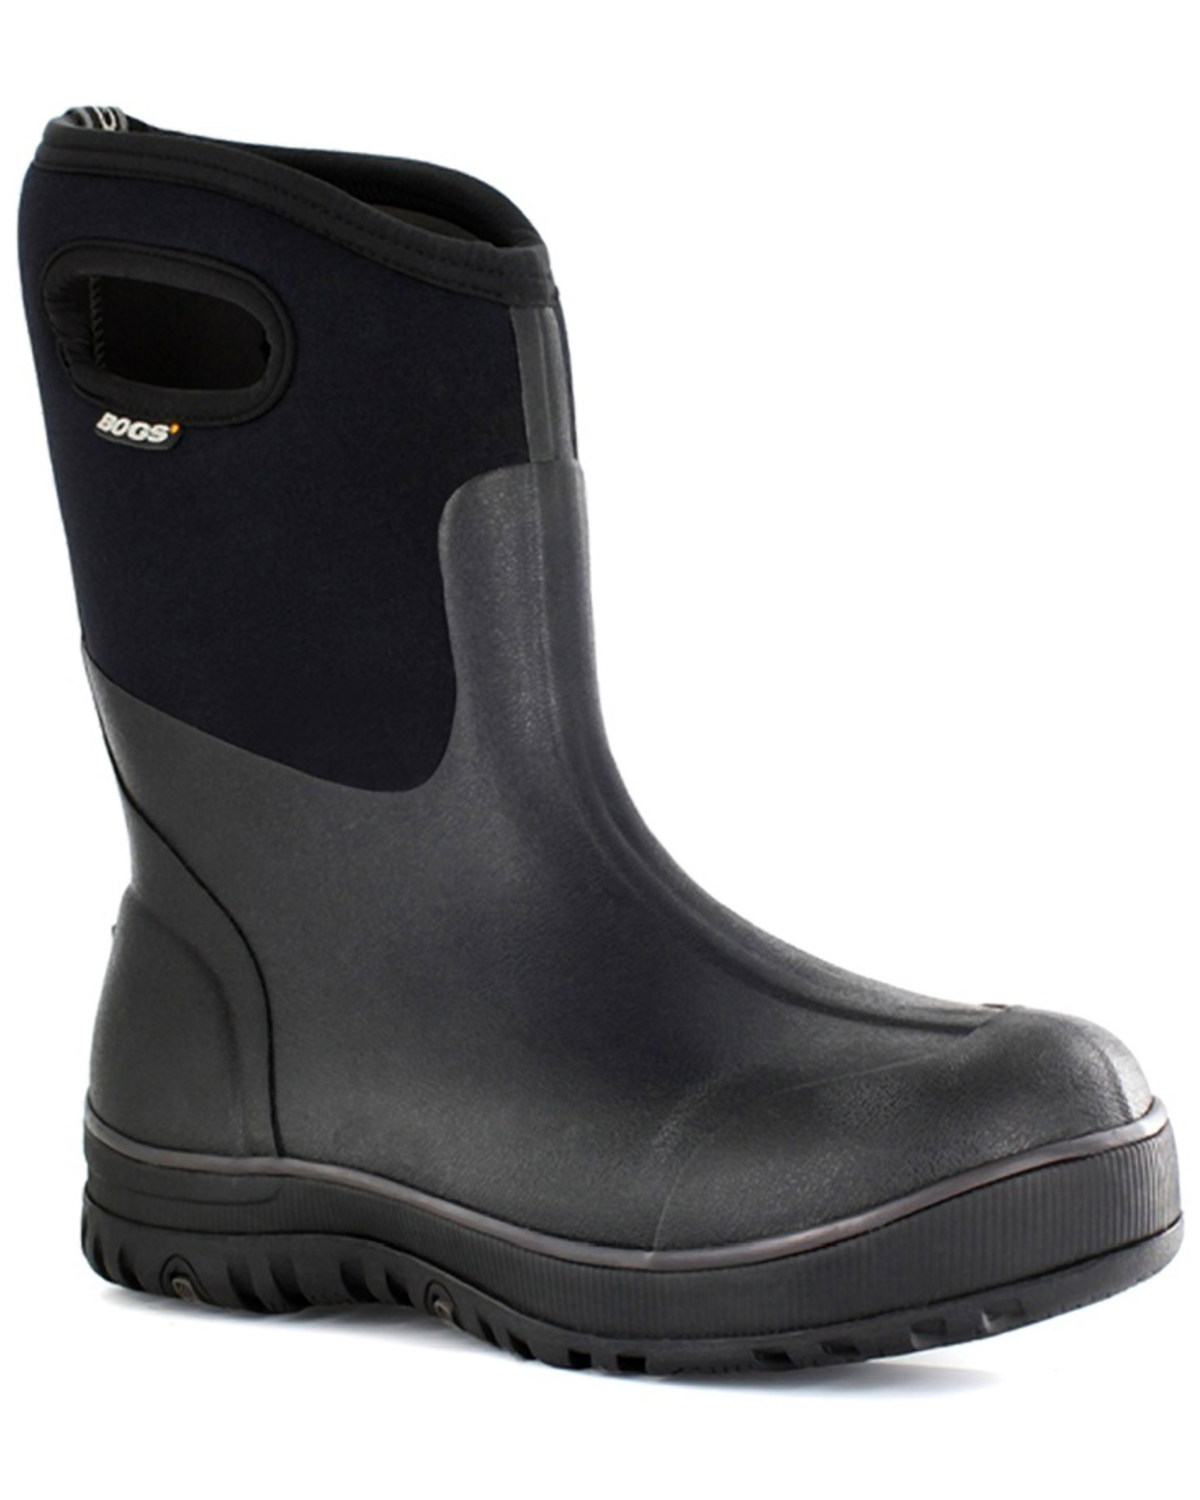 online store 8f475 d3e53 Bogs Men's Classic Insulated Waterproof Boots - Round Toe